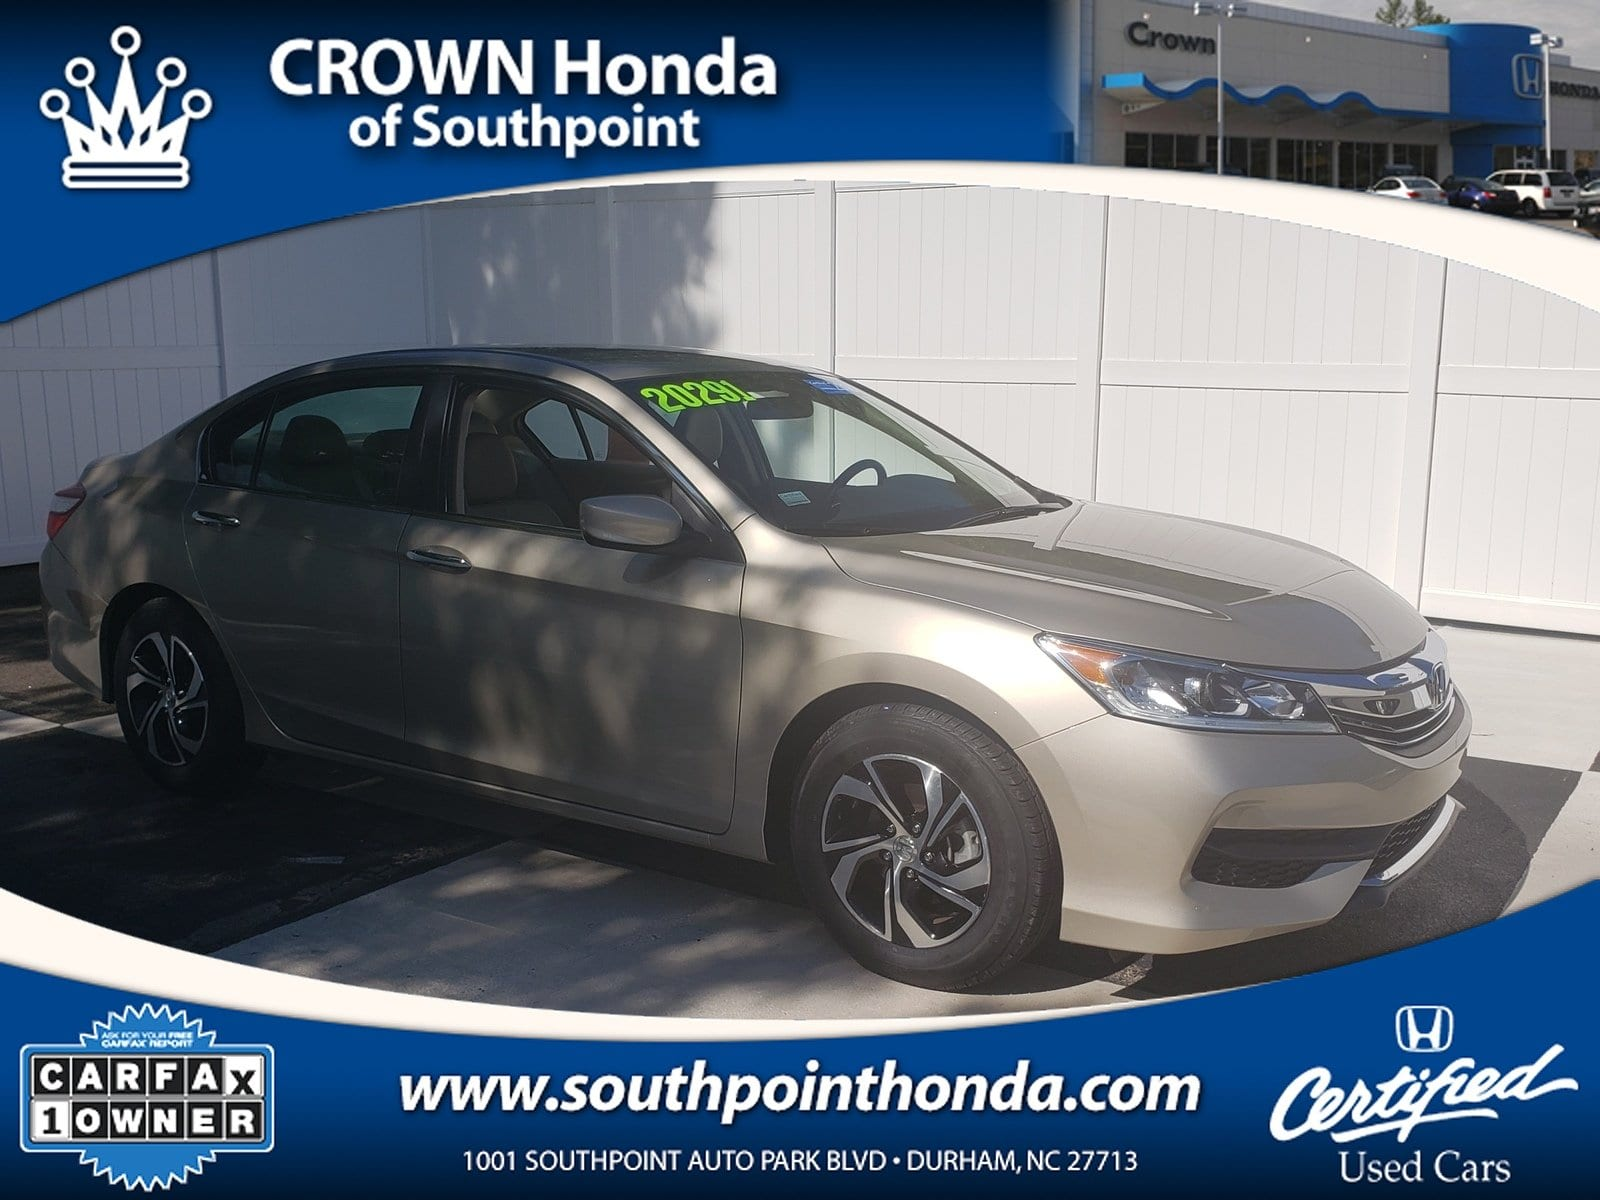 Carfax Used Cars Greensboro Nc Awesome Certified Used 2016 Honda Accord Lx for Sale In Greensboro Nc